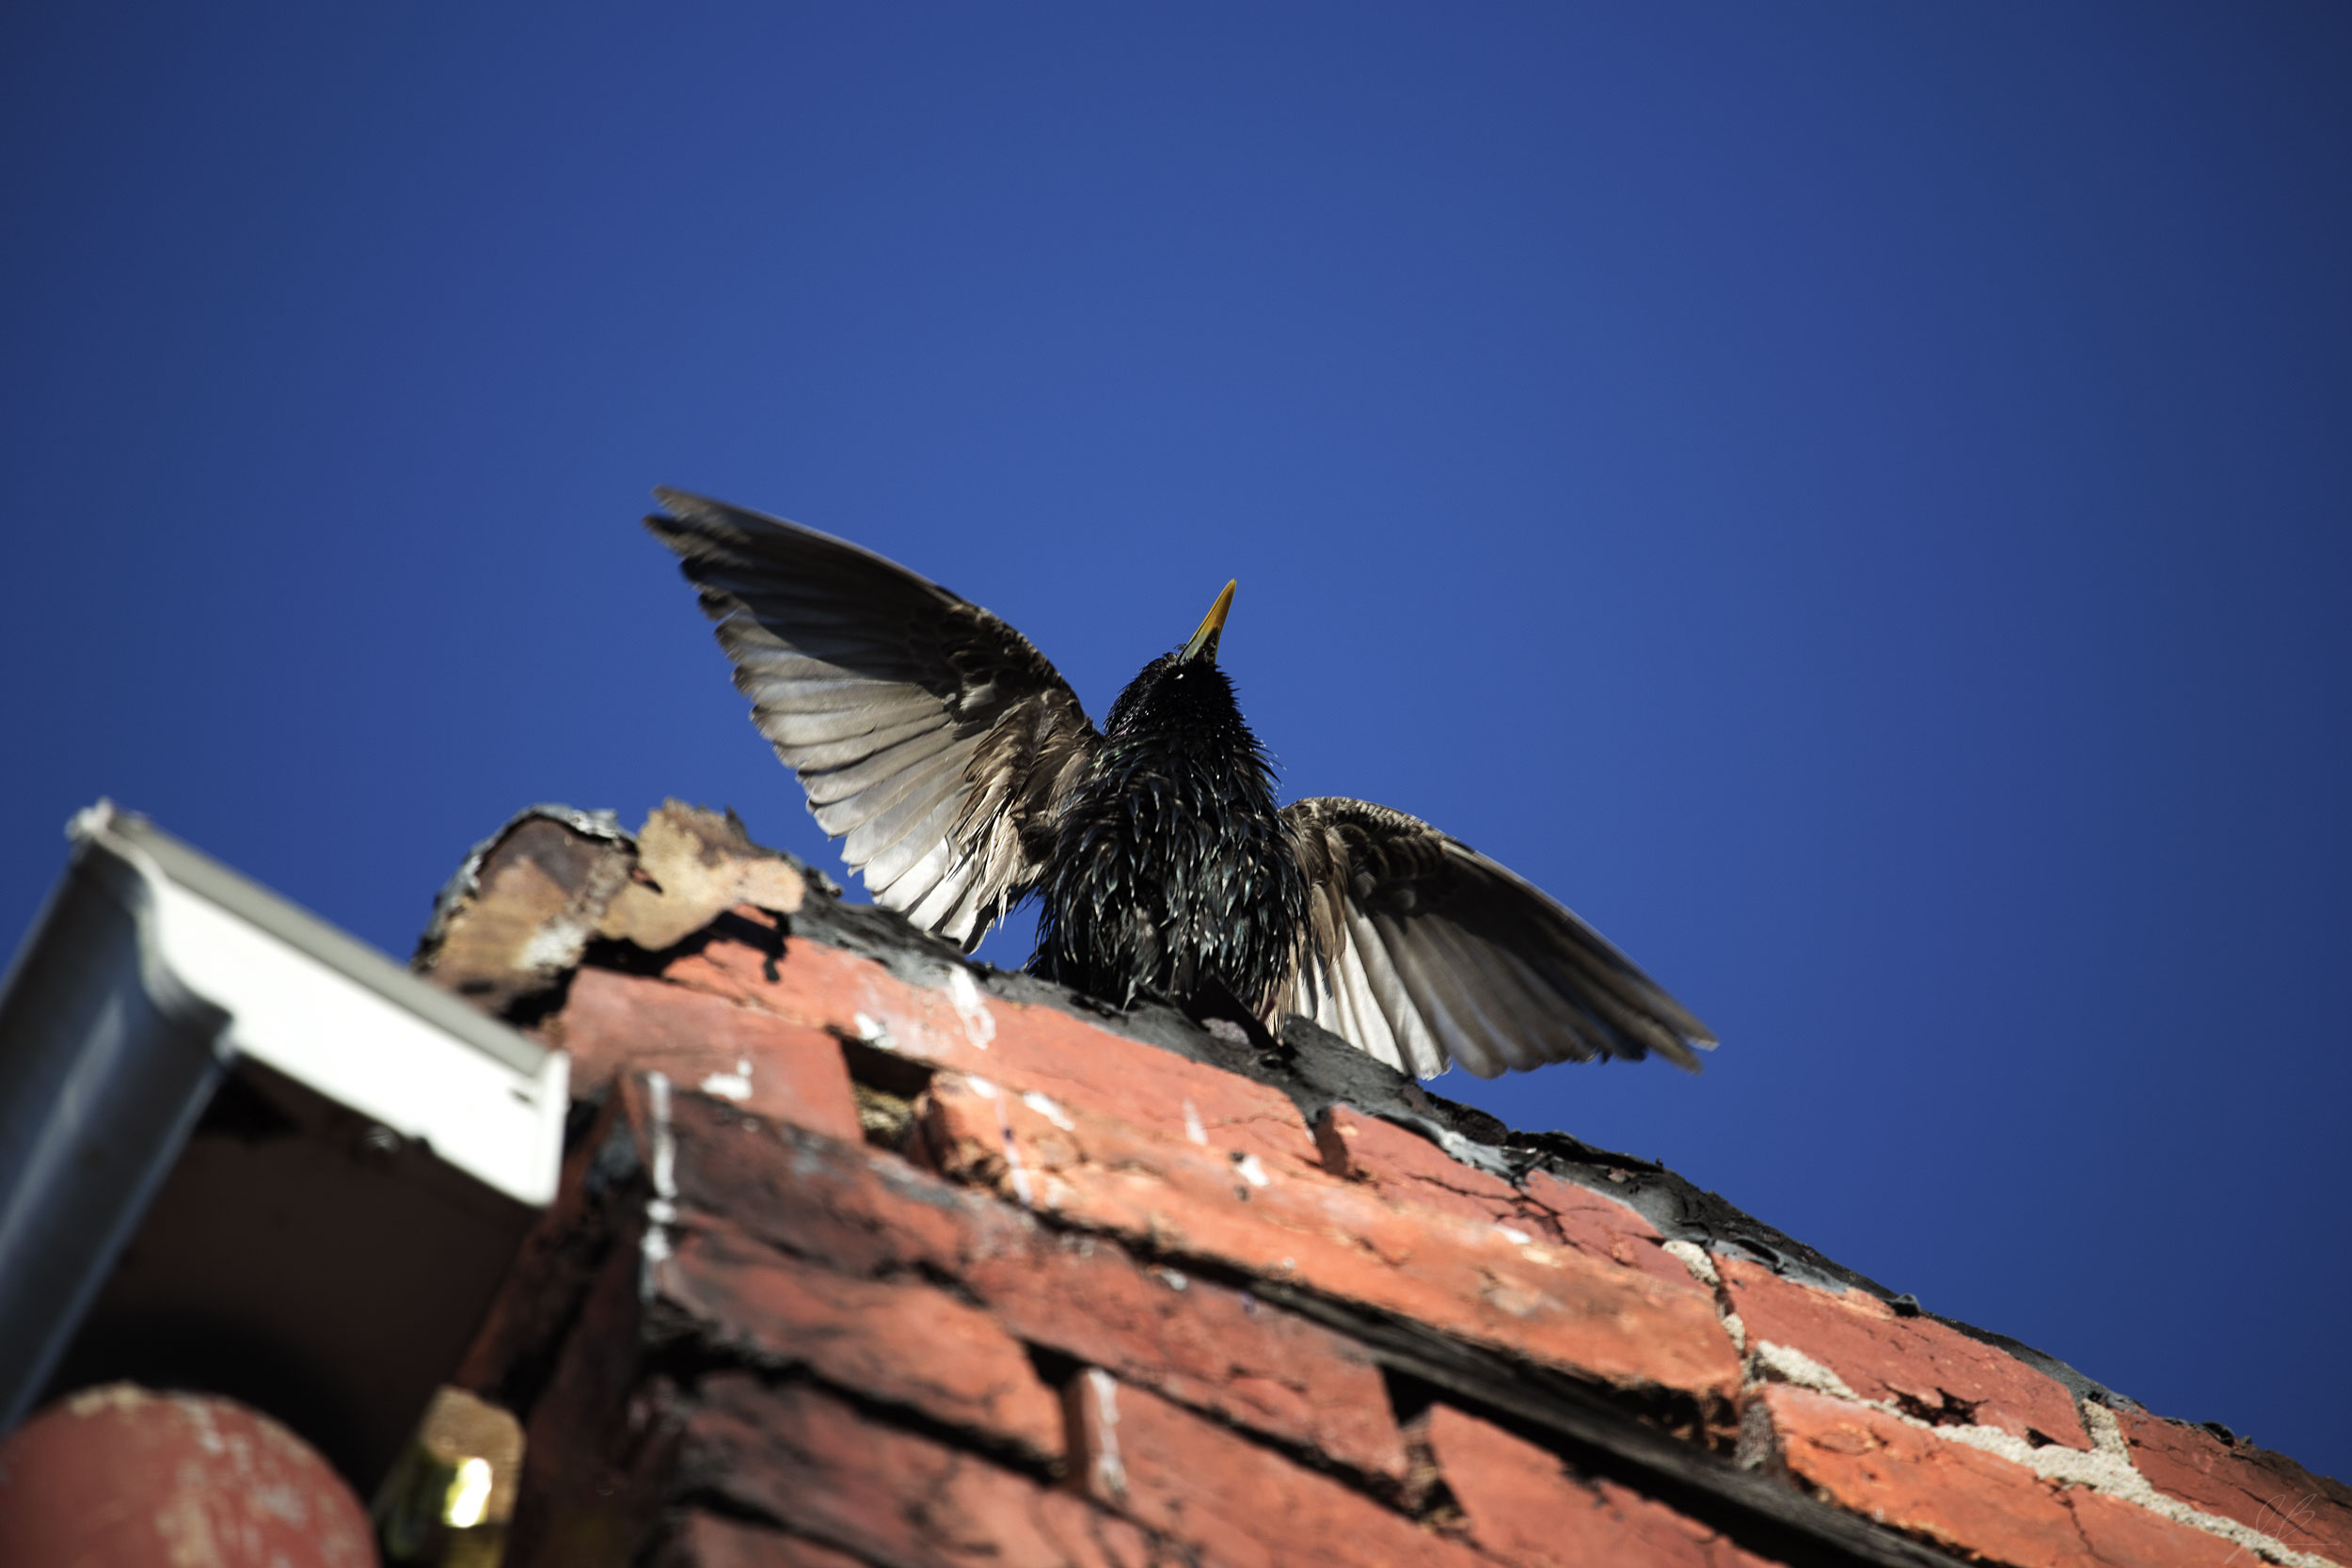 starling-wings-open-2-copy.jpg